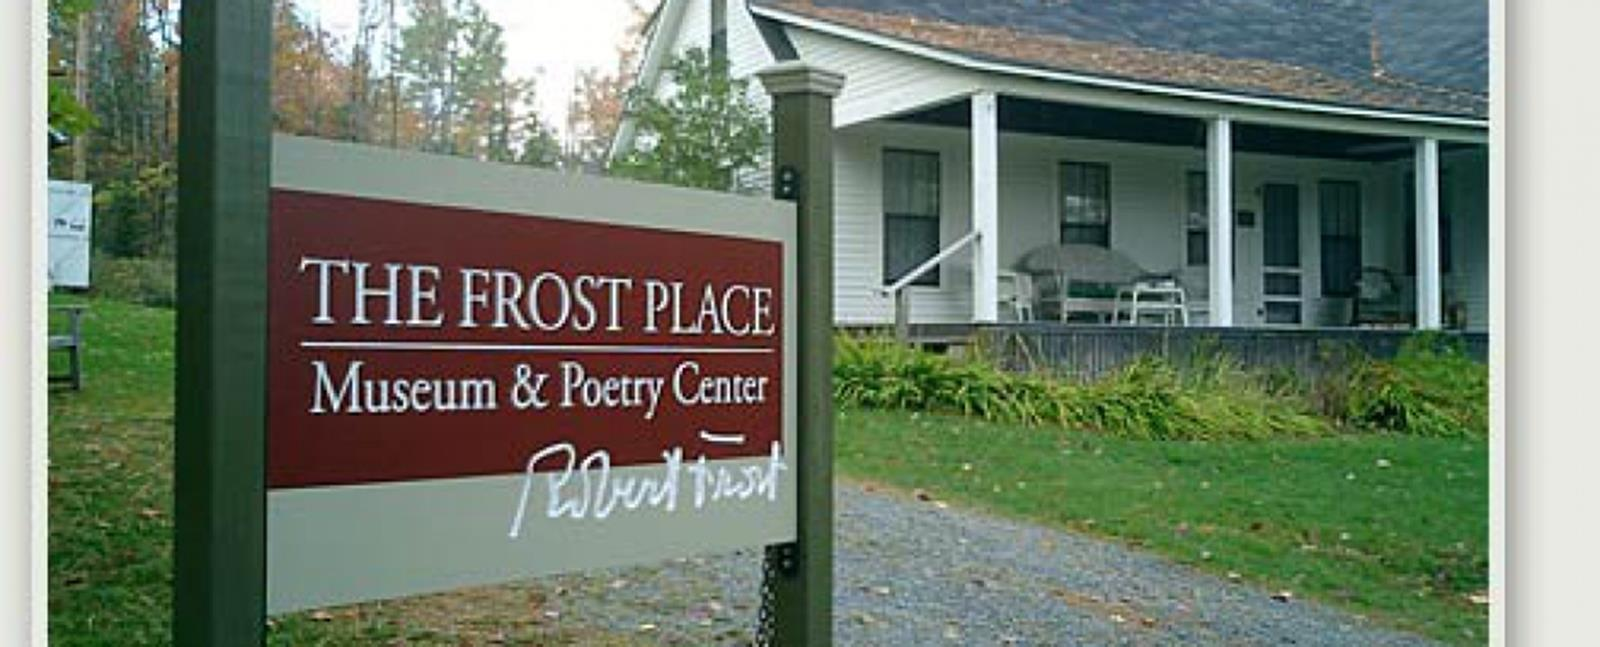 The exterior of Robert Frost's home. Credit: The Frost Place